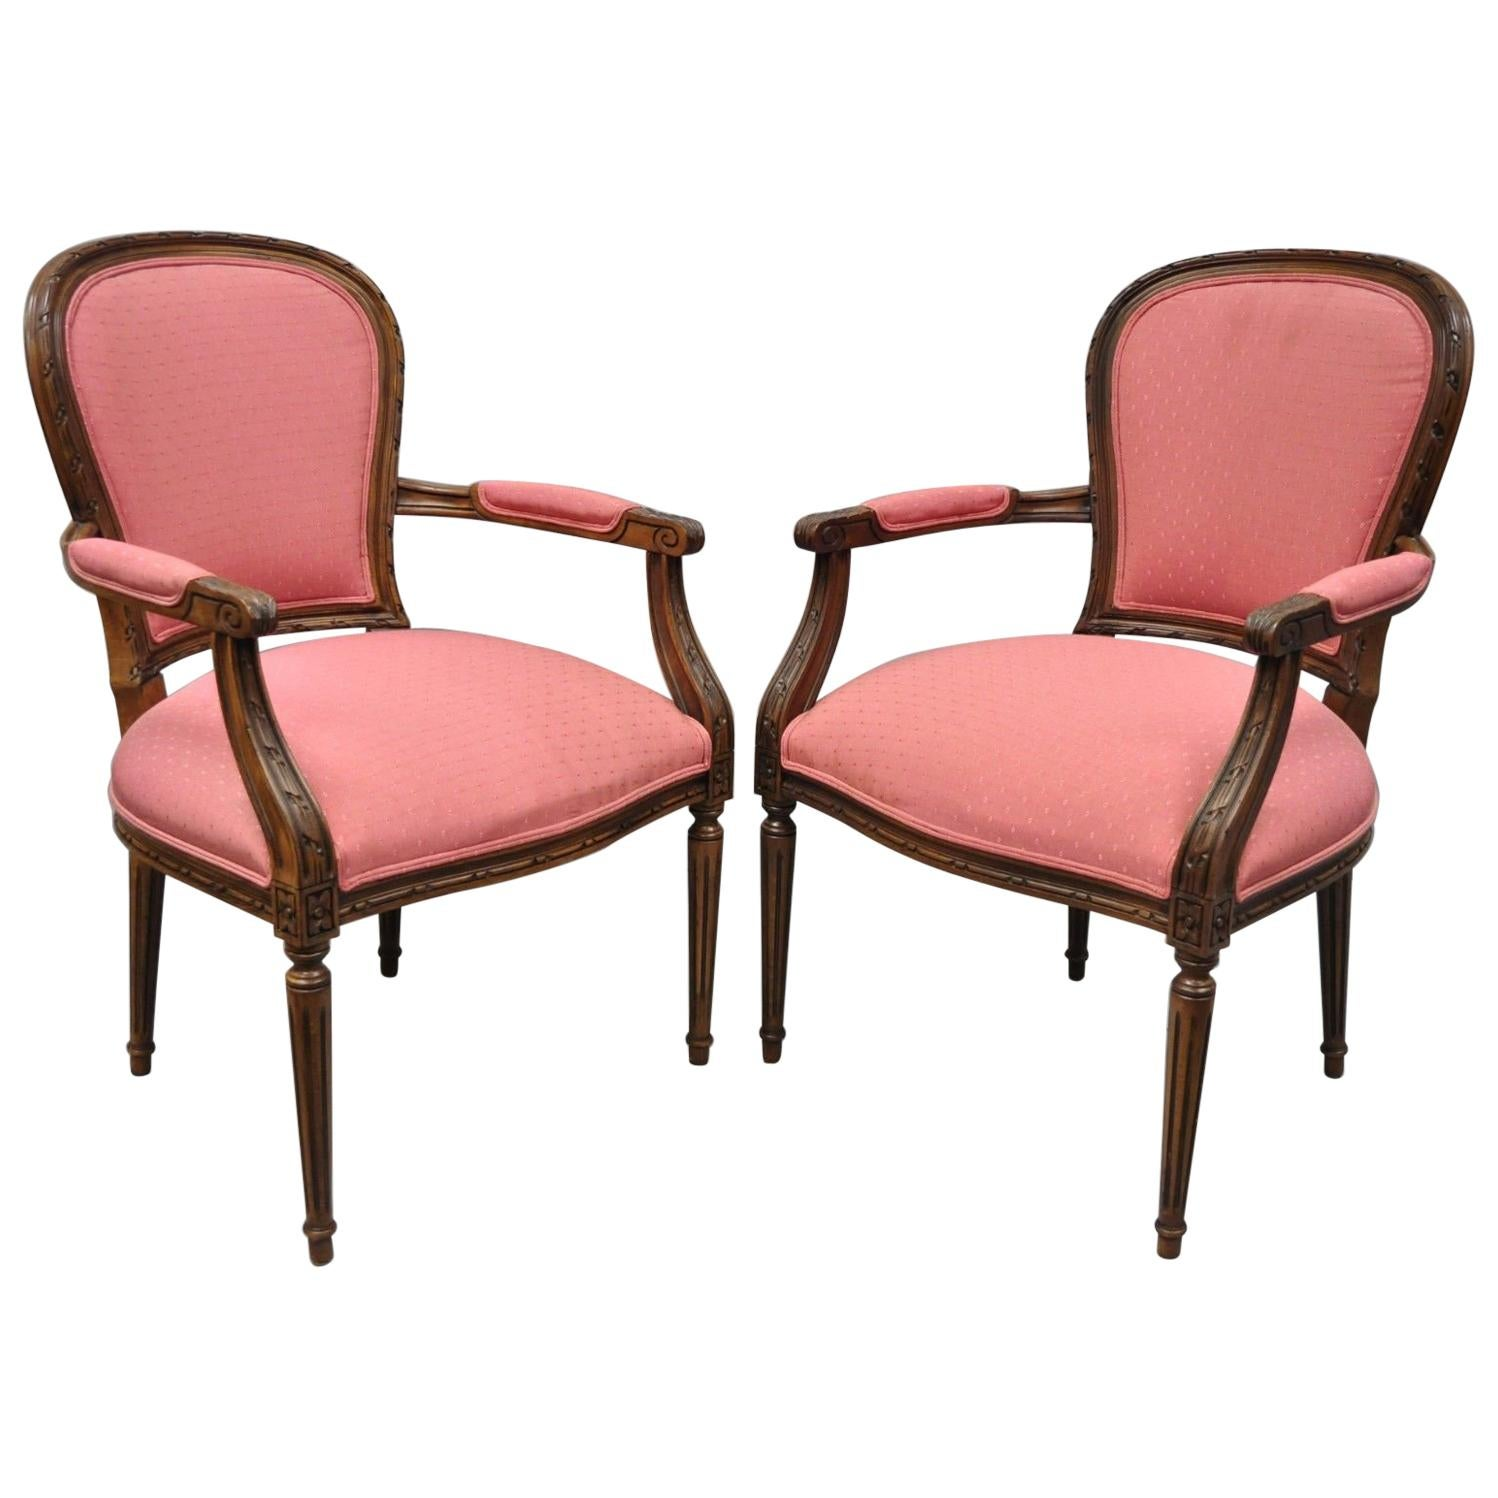 Ordinaire Pair Of Ethan Allen Louis XVI French Style Pink Armchairs Fauteuil Chair